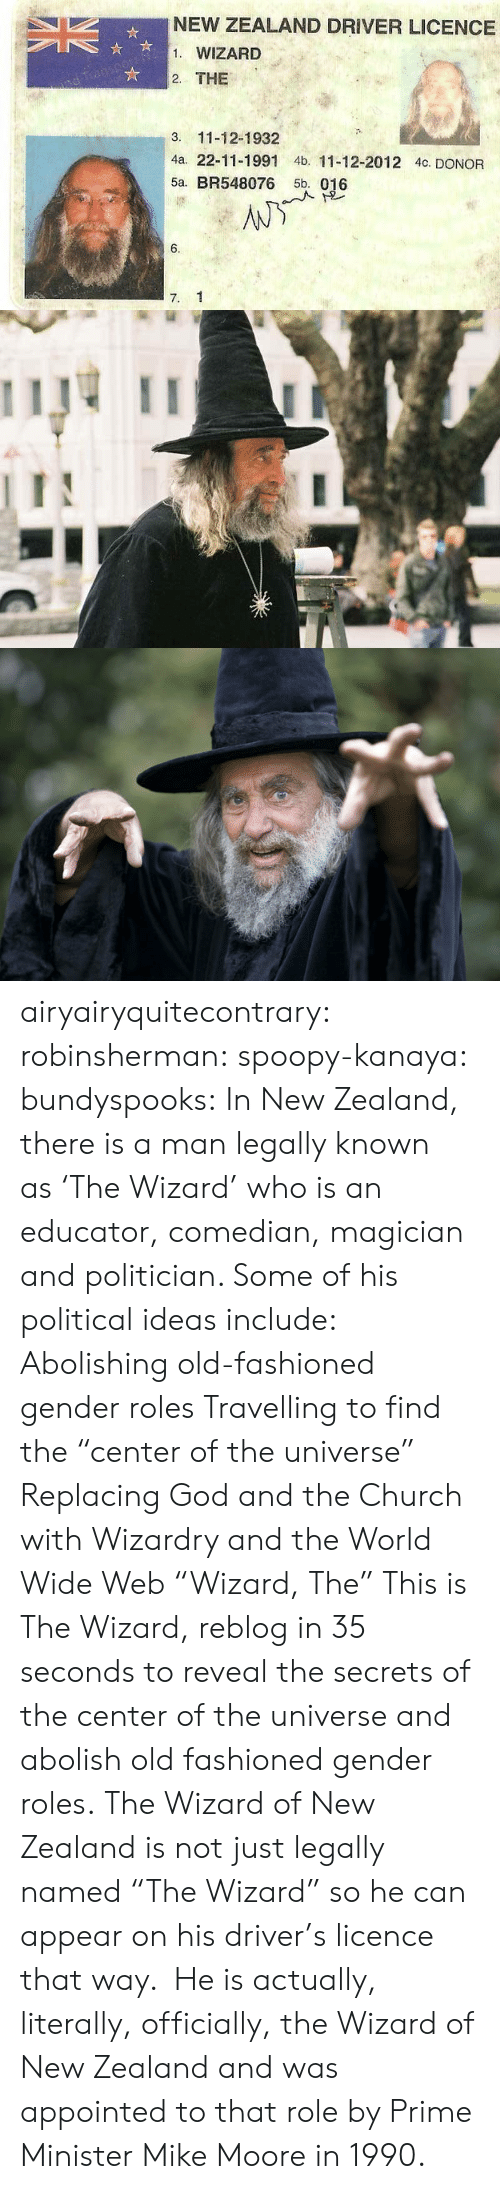 """politician: NEW ZEALAND DRIVER LICENCE  1. WIZARD  2. THE  3. 11-12-1932  4a. 22-11-1991 4b. 11-12-2012 4c. DONOR  5a. BR548076 5b. 016  6.  7. 1 airyairyquitecontrary:  robinsherman:  spoopy-kanaya:  bundyspooks:  In New Zealand, there is a man legally known as'The Wizard' whois an educator, comedian, magician and politician. Some of his political ideas include: Abolishing old-fashioned gender roles Travelling to find the """"center of the universe"""" Replacing God and the Church with Wizardry and the World Wide Web  """"Wizard, The""""  This is The Wizard, reblog in 35 seconds to reveal the secrets of the center of the universe and abolish old fashioned gender roles.  The Wizard of New Zealand is not just legally named""""The Wizard"""" so he can appear on his driver's licence that way. He is actually, literally, officially, the Wizard of New Zealand and was appointed to that role by Prime Minister Mike Moore in 1990."""